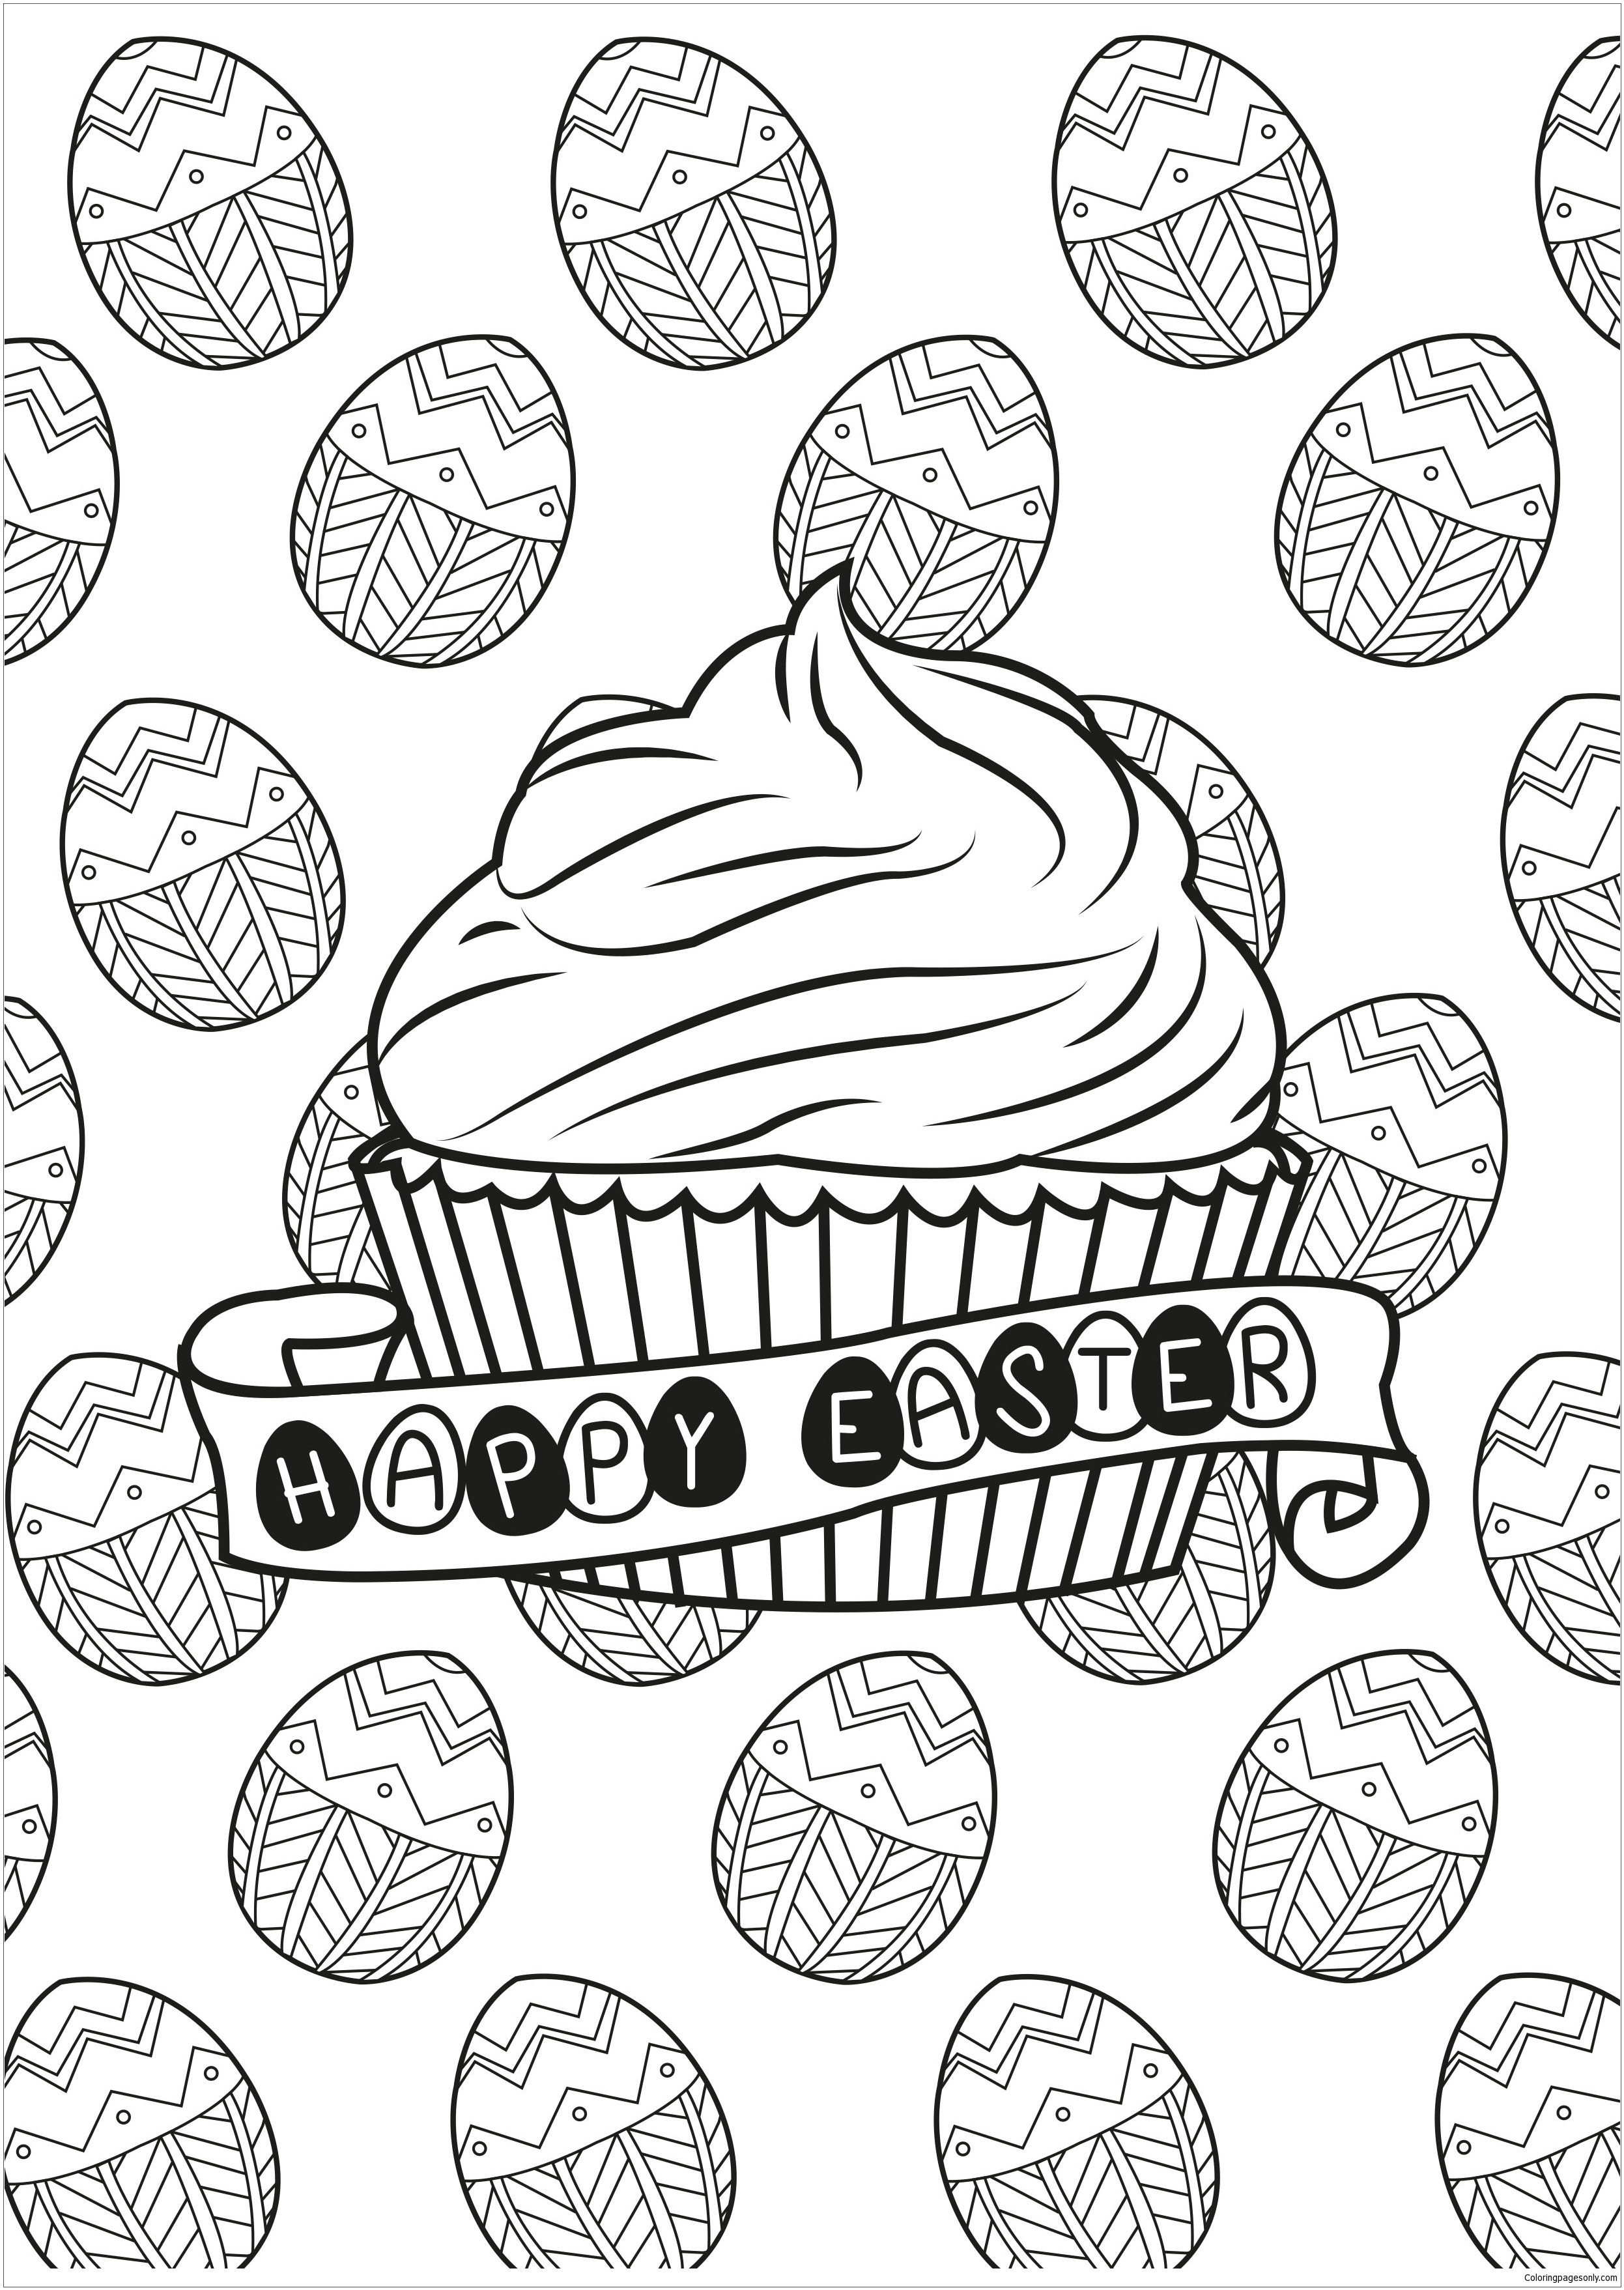 Cupcakes And Cakes Coloring Page Free Coloring Pages Online